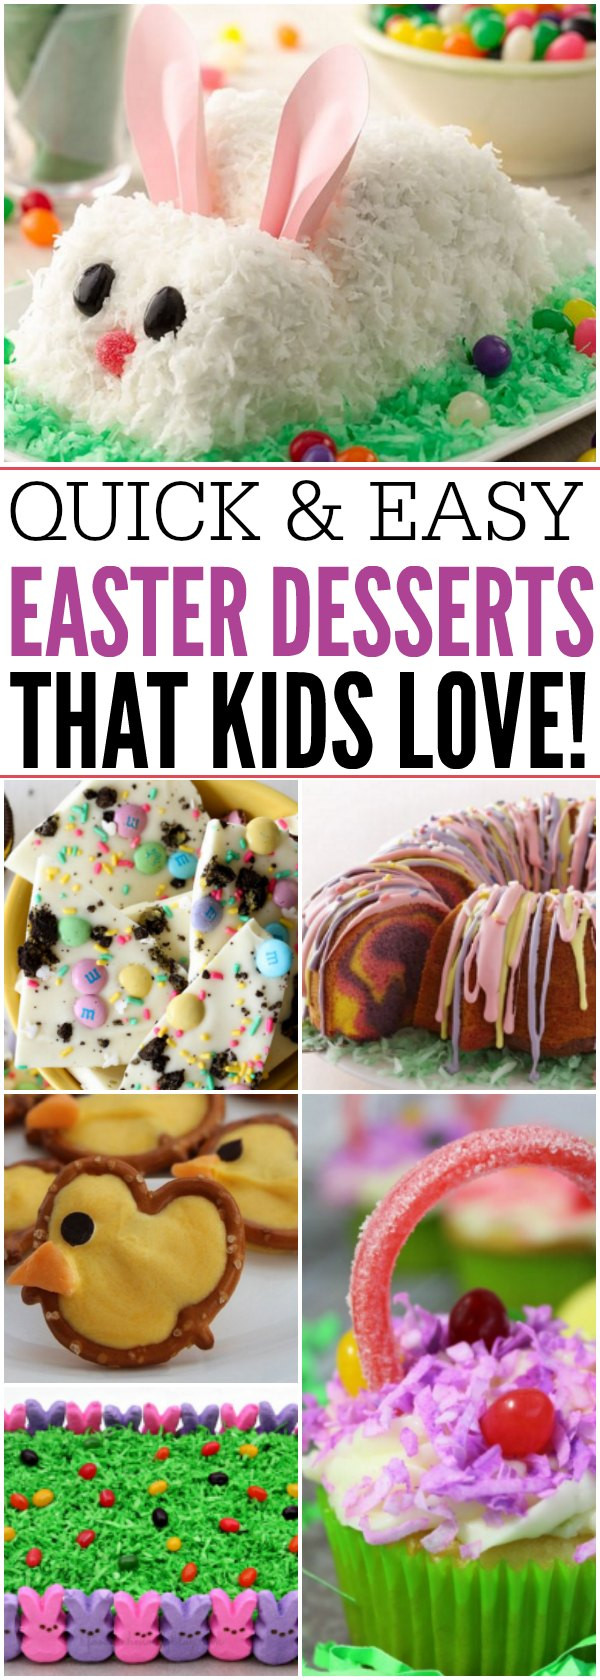 Quick Easter Desserts  16 Quick and Easy Easter Dessert Recipes That Everyone